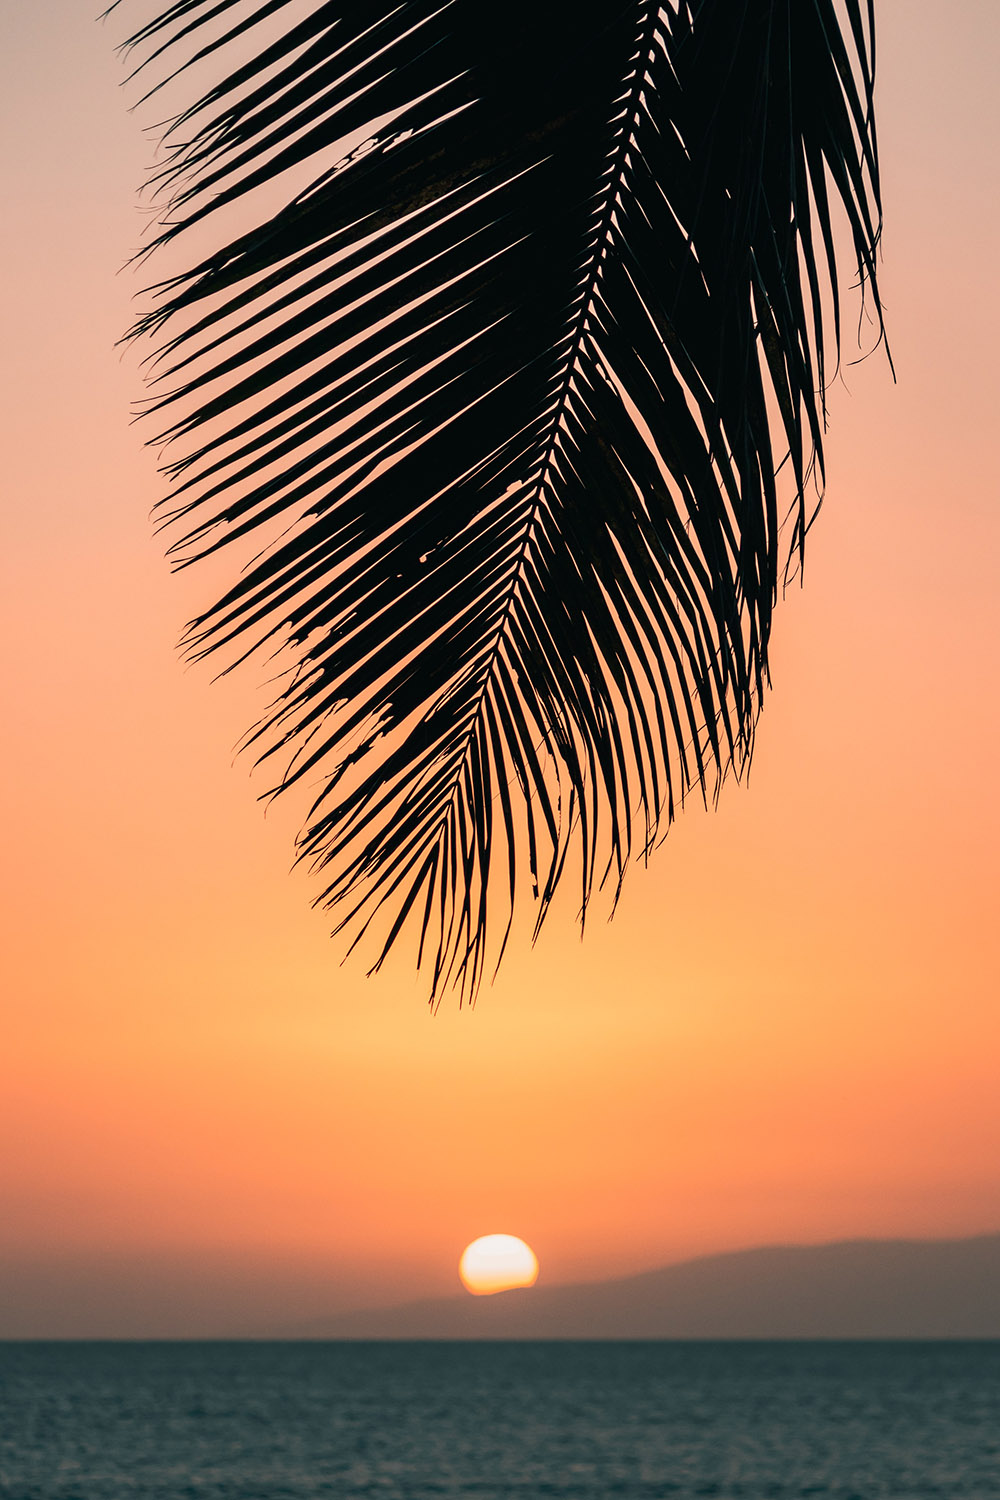 Sunset in paradise Photo: unsplash